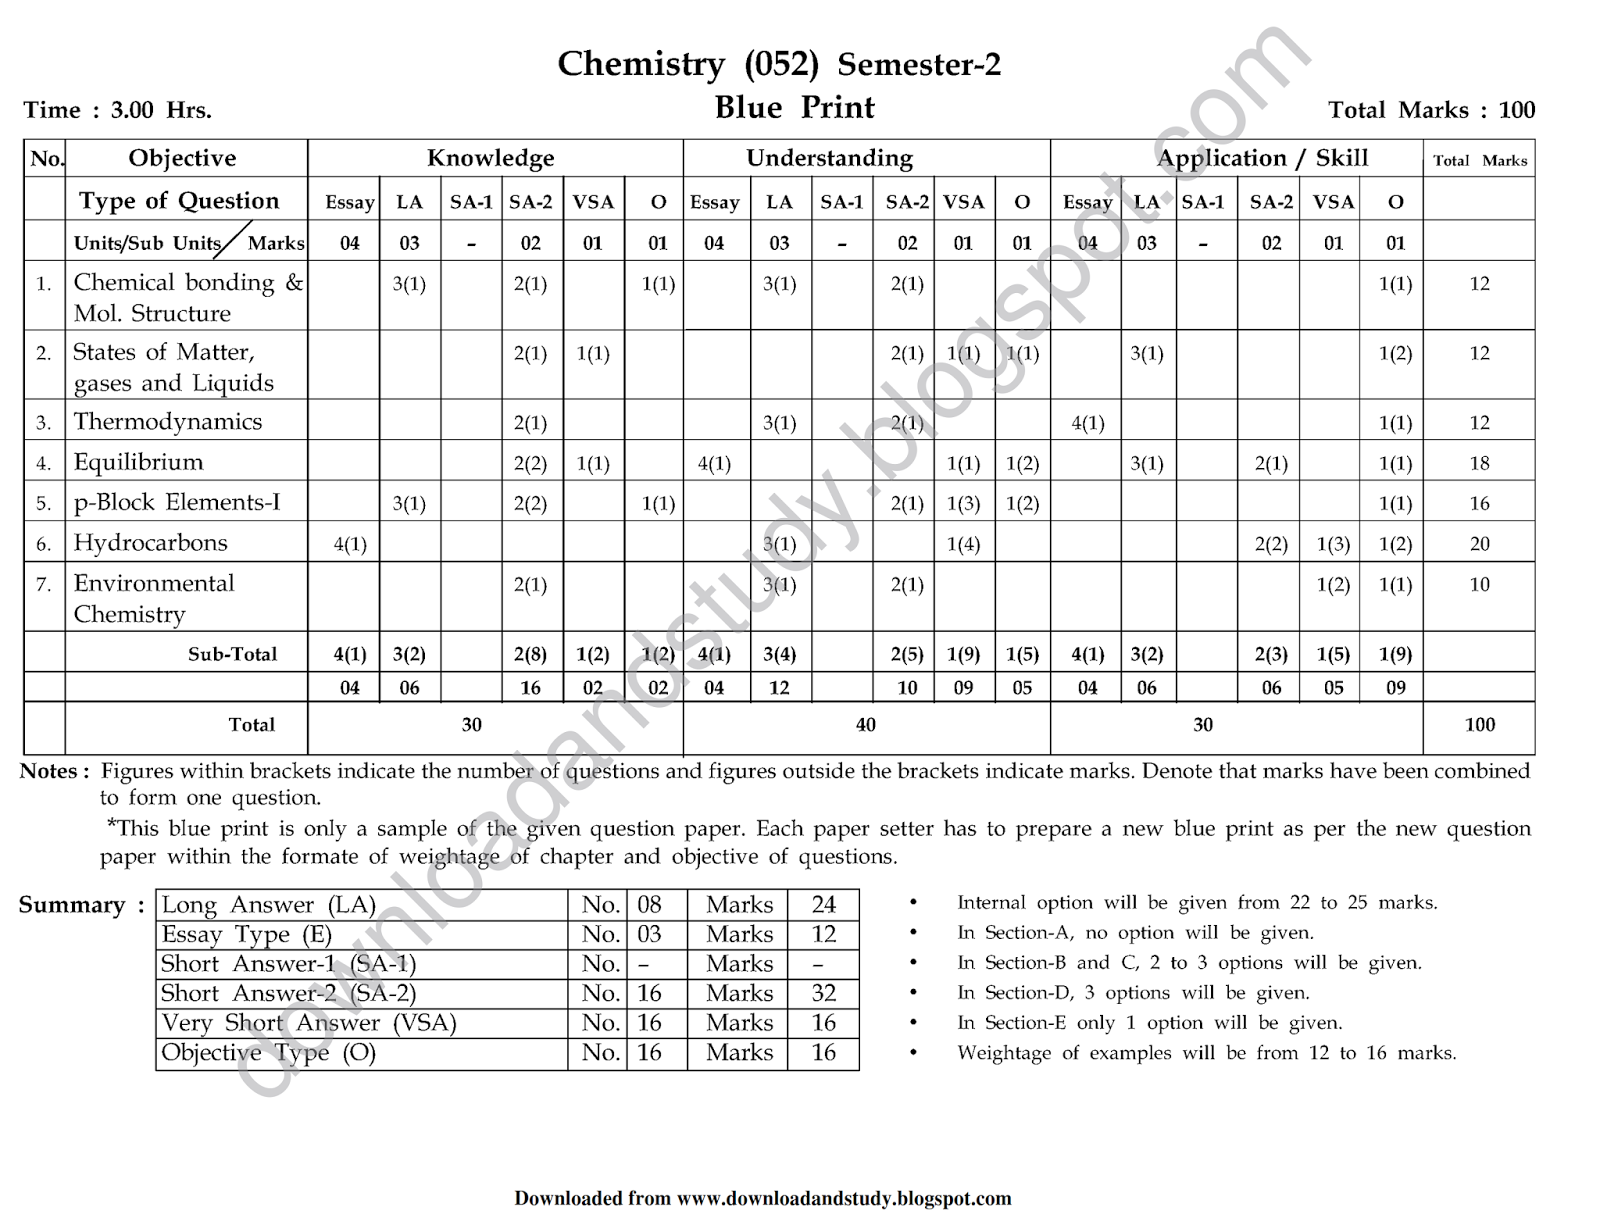 Download Study Chemistry Semester 2 Blueprint Of Question Paper